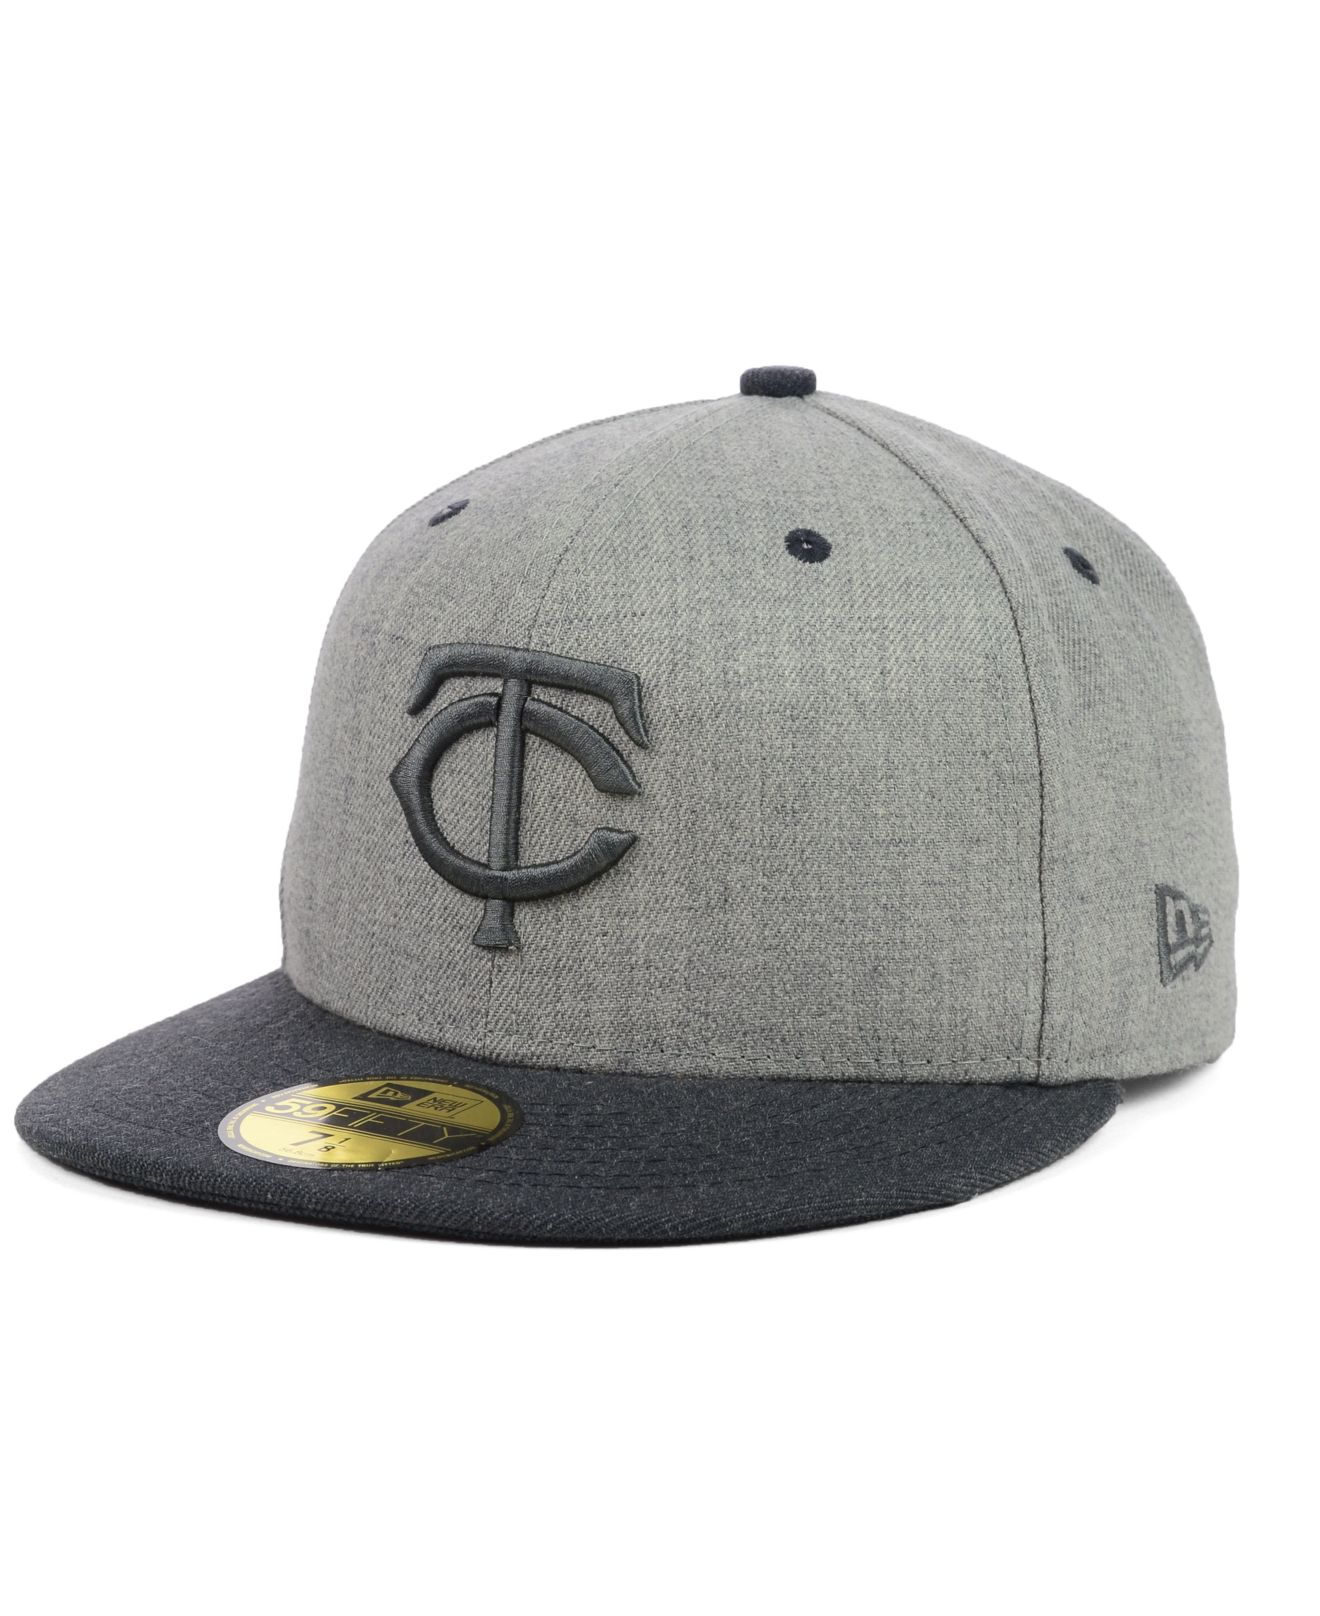 low priced d8113 bfc63 Lyst - KTZ Minnesota Twins Heather Mashup 59Fifty Cap in Gray for Men